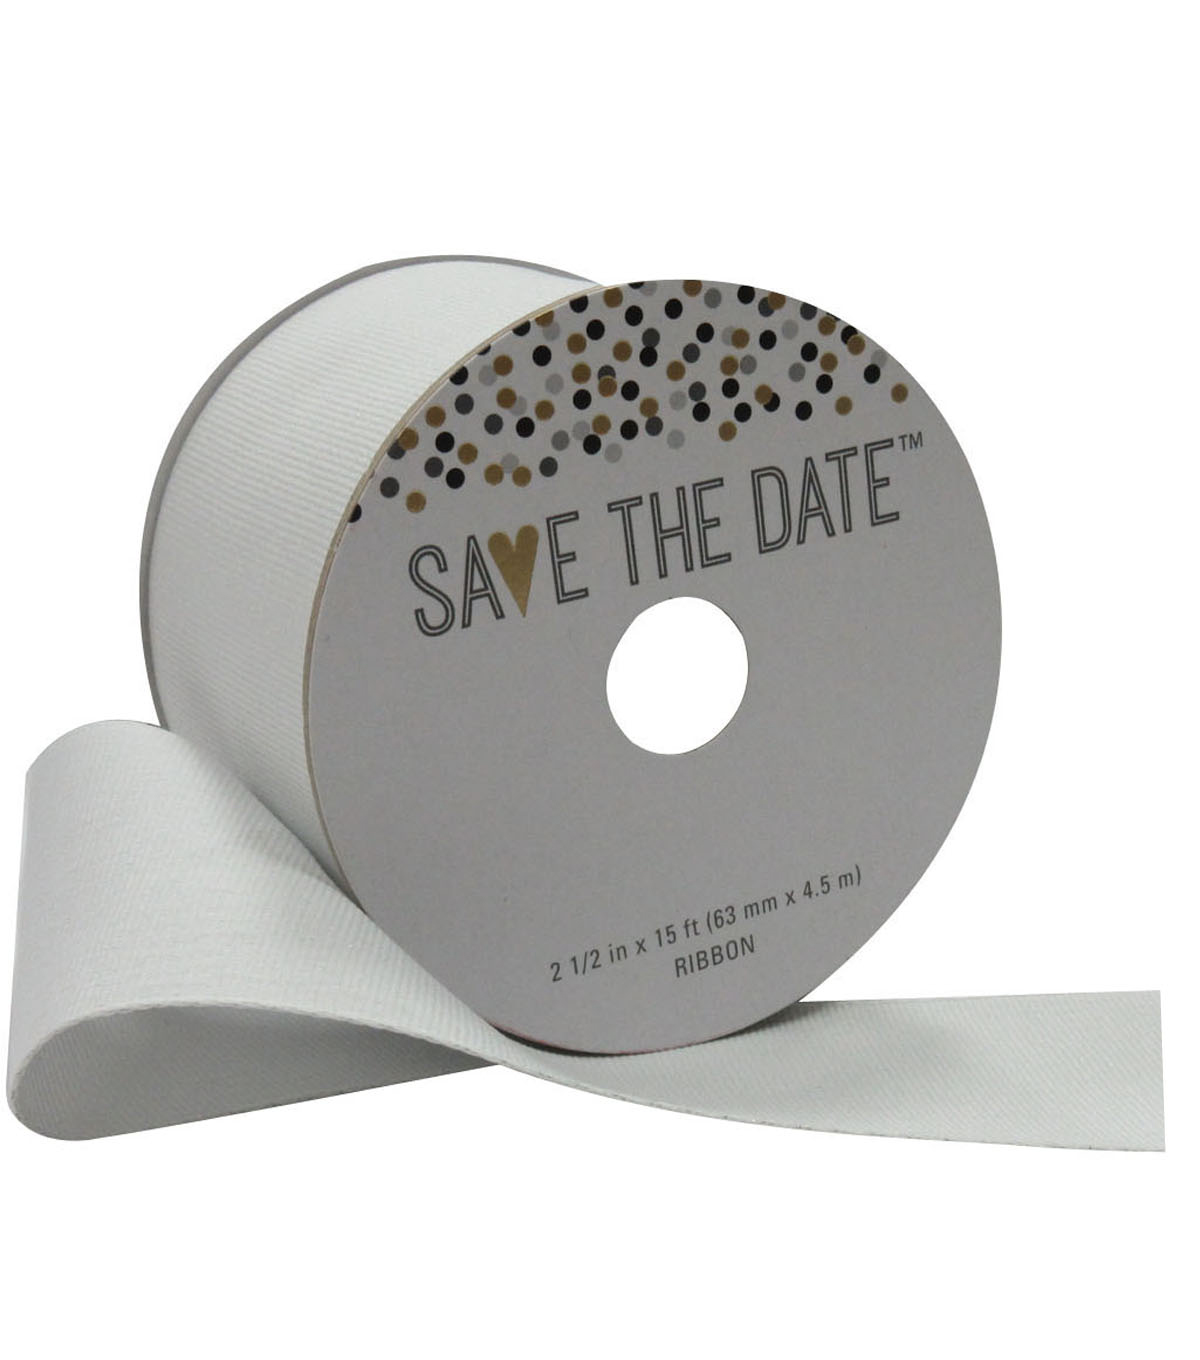 Save the Date 2.5\u0027\u0027 X 15\u0027 Ribbon-Metallic White Grosgrain